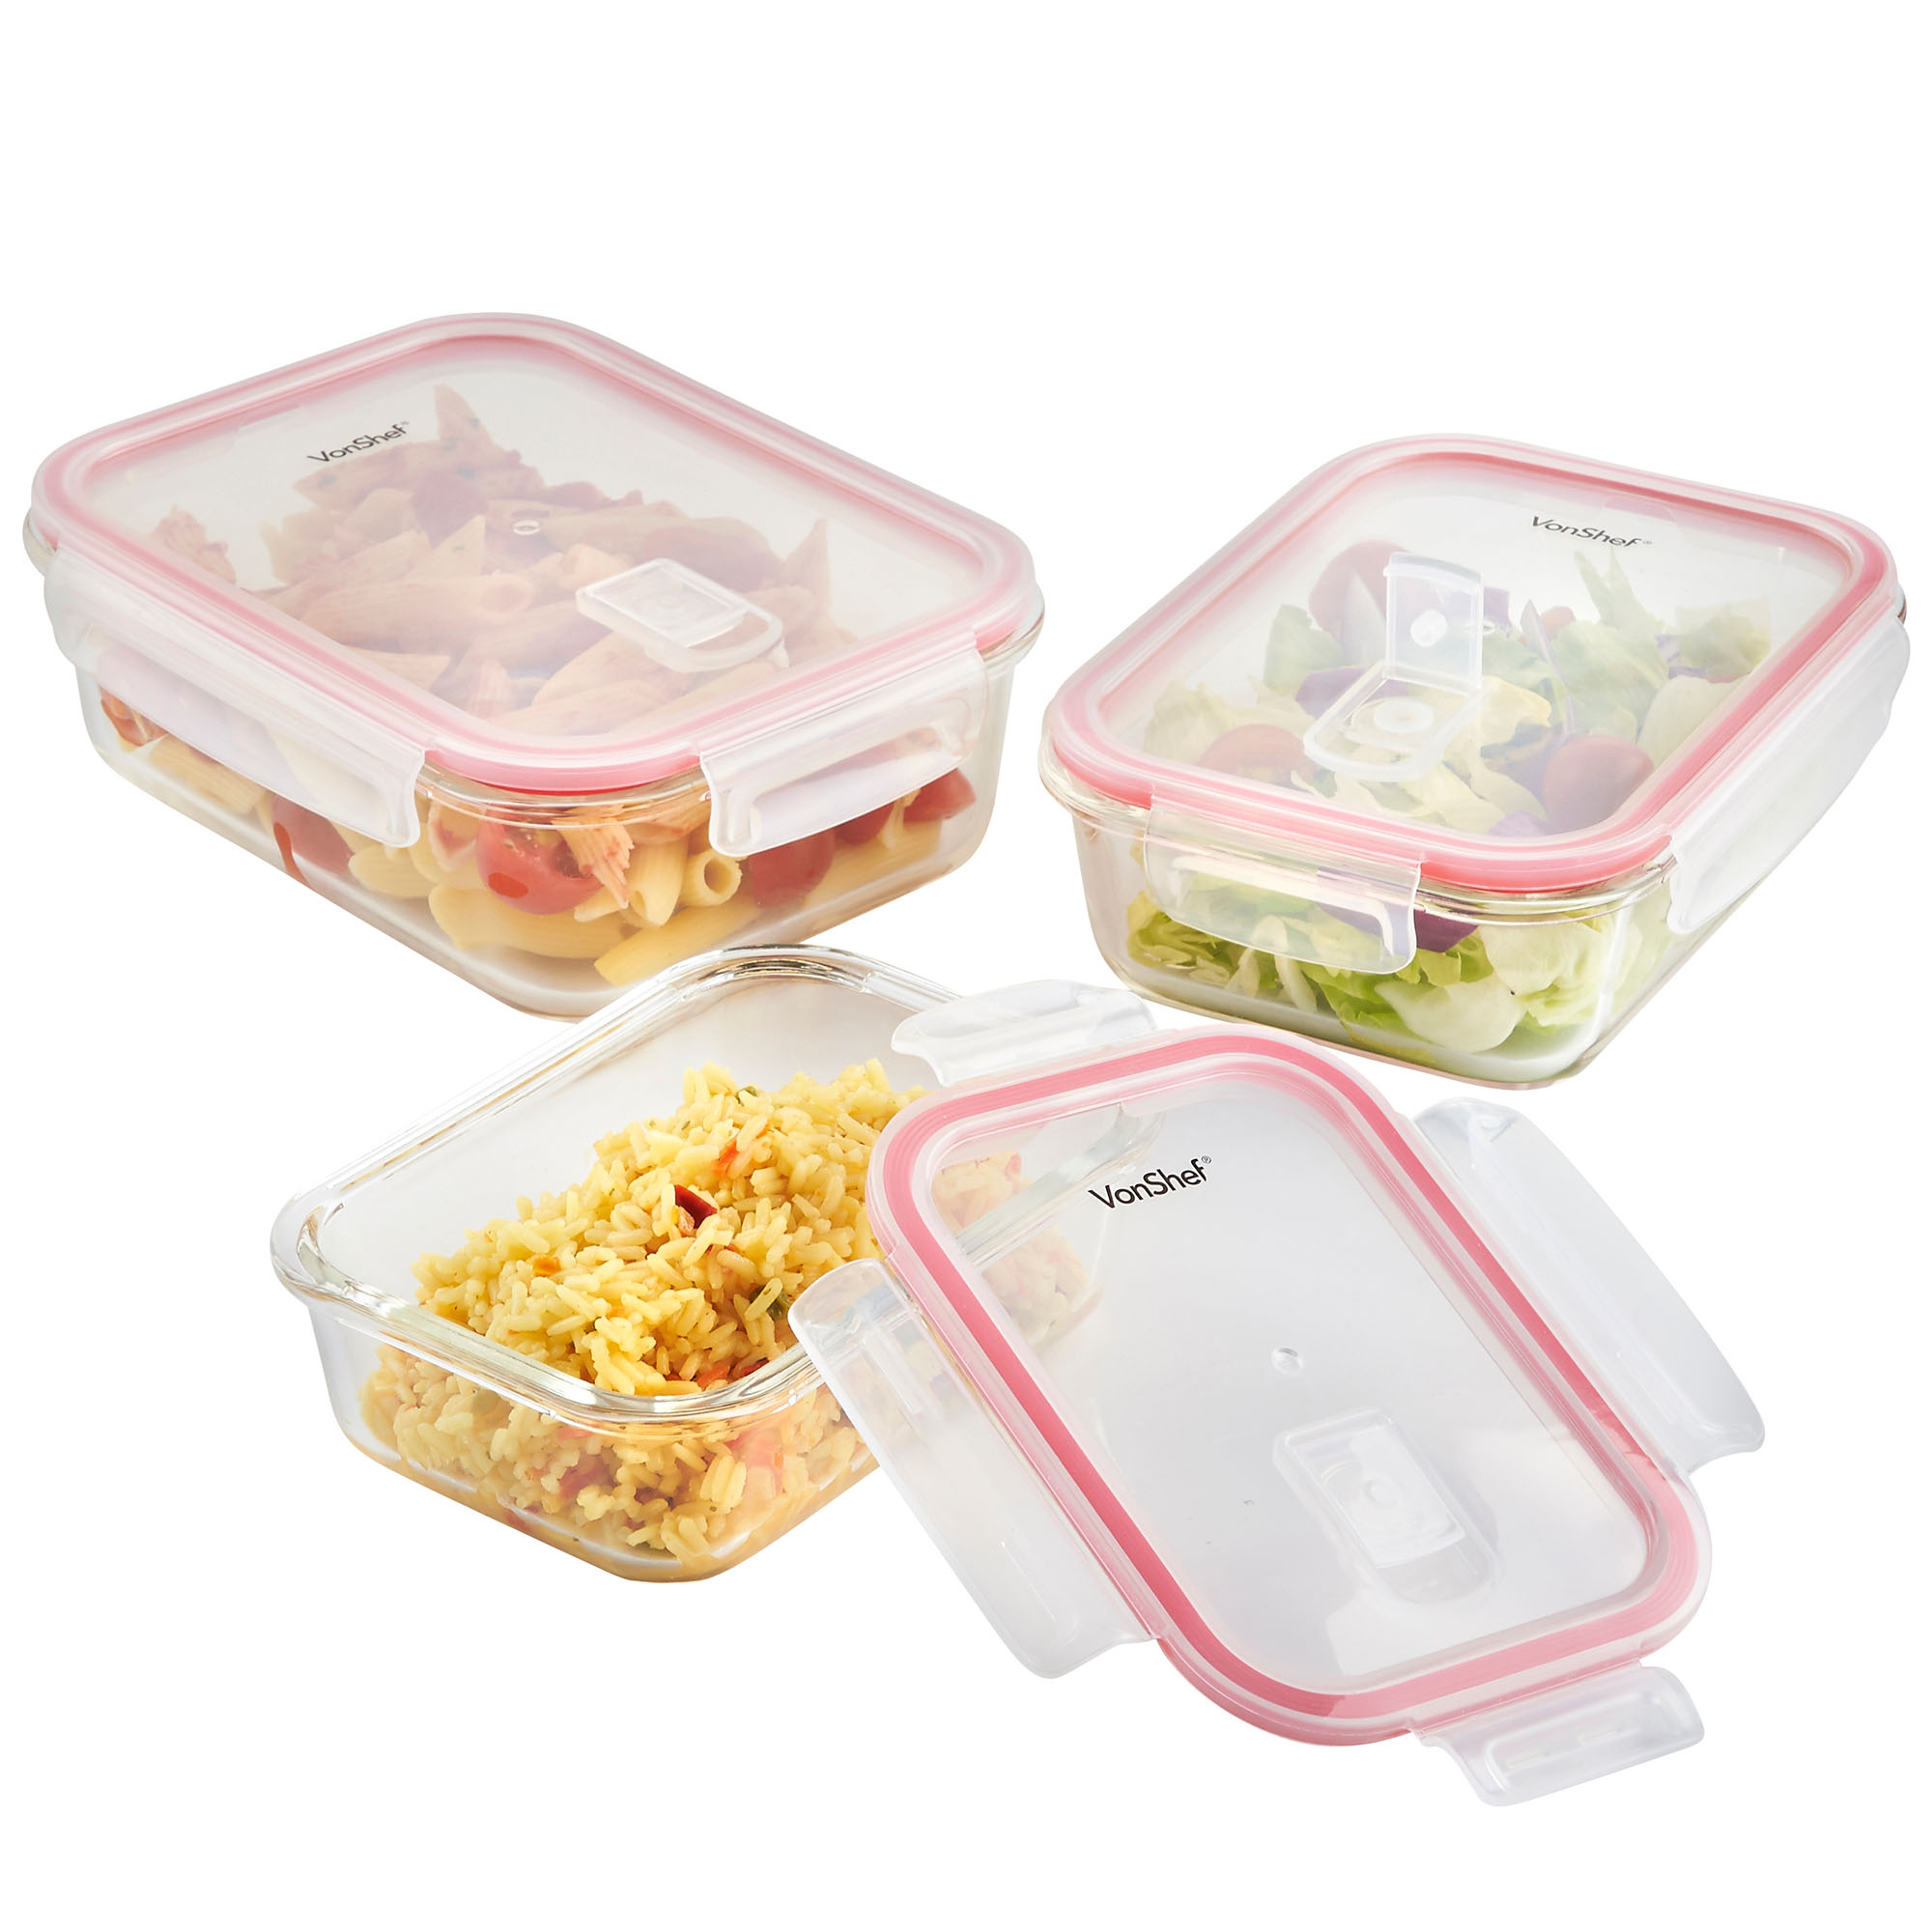 Vonshef Food Container 3x Rectangular Microwave Oven Safe